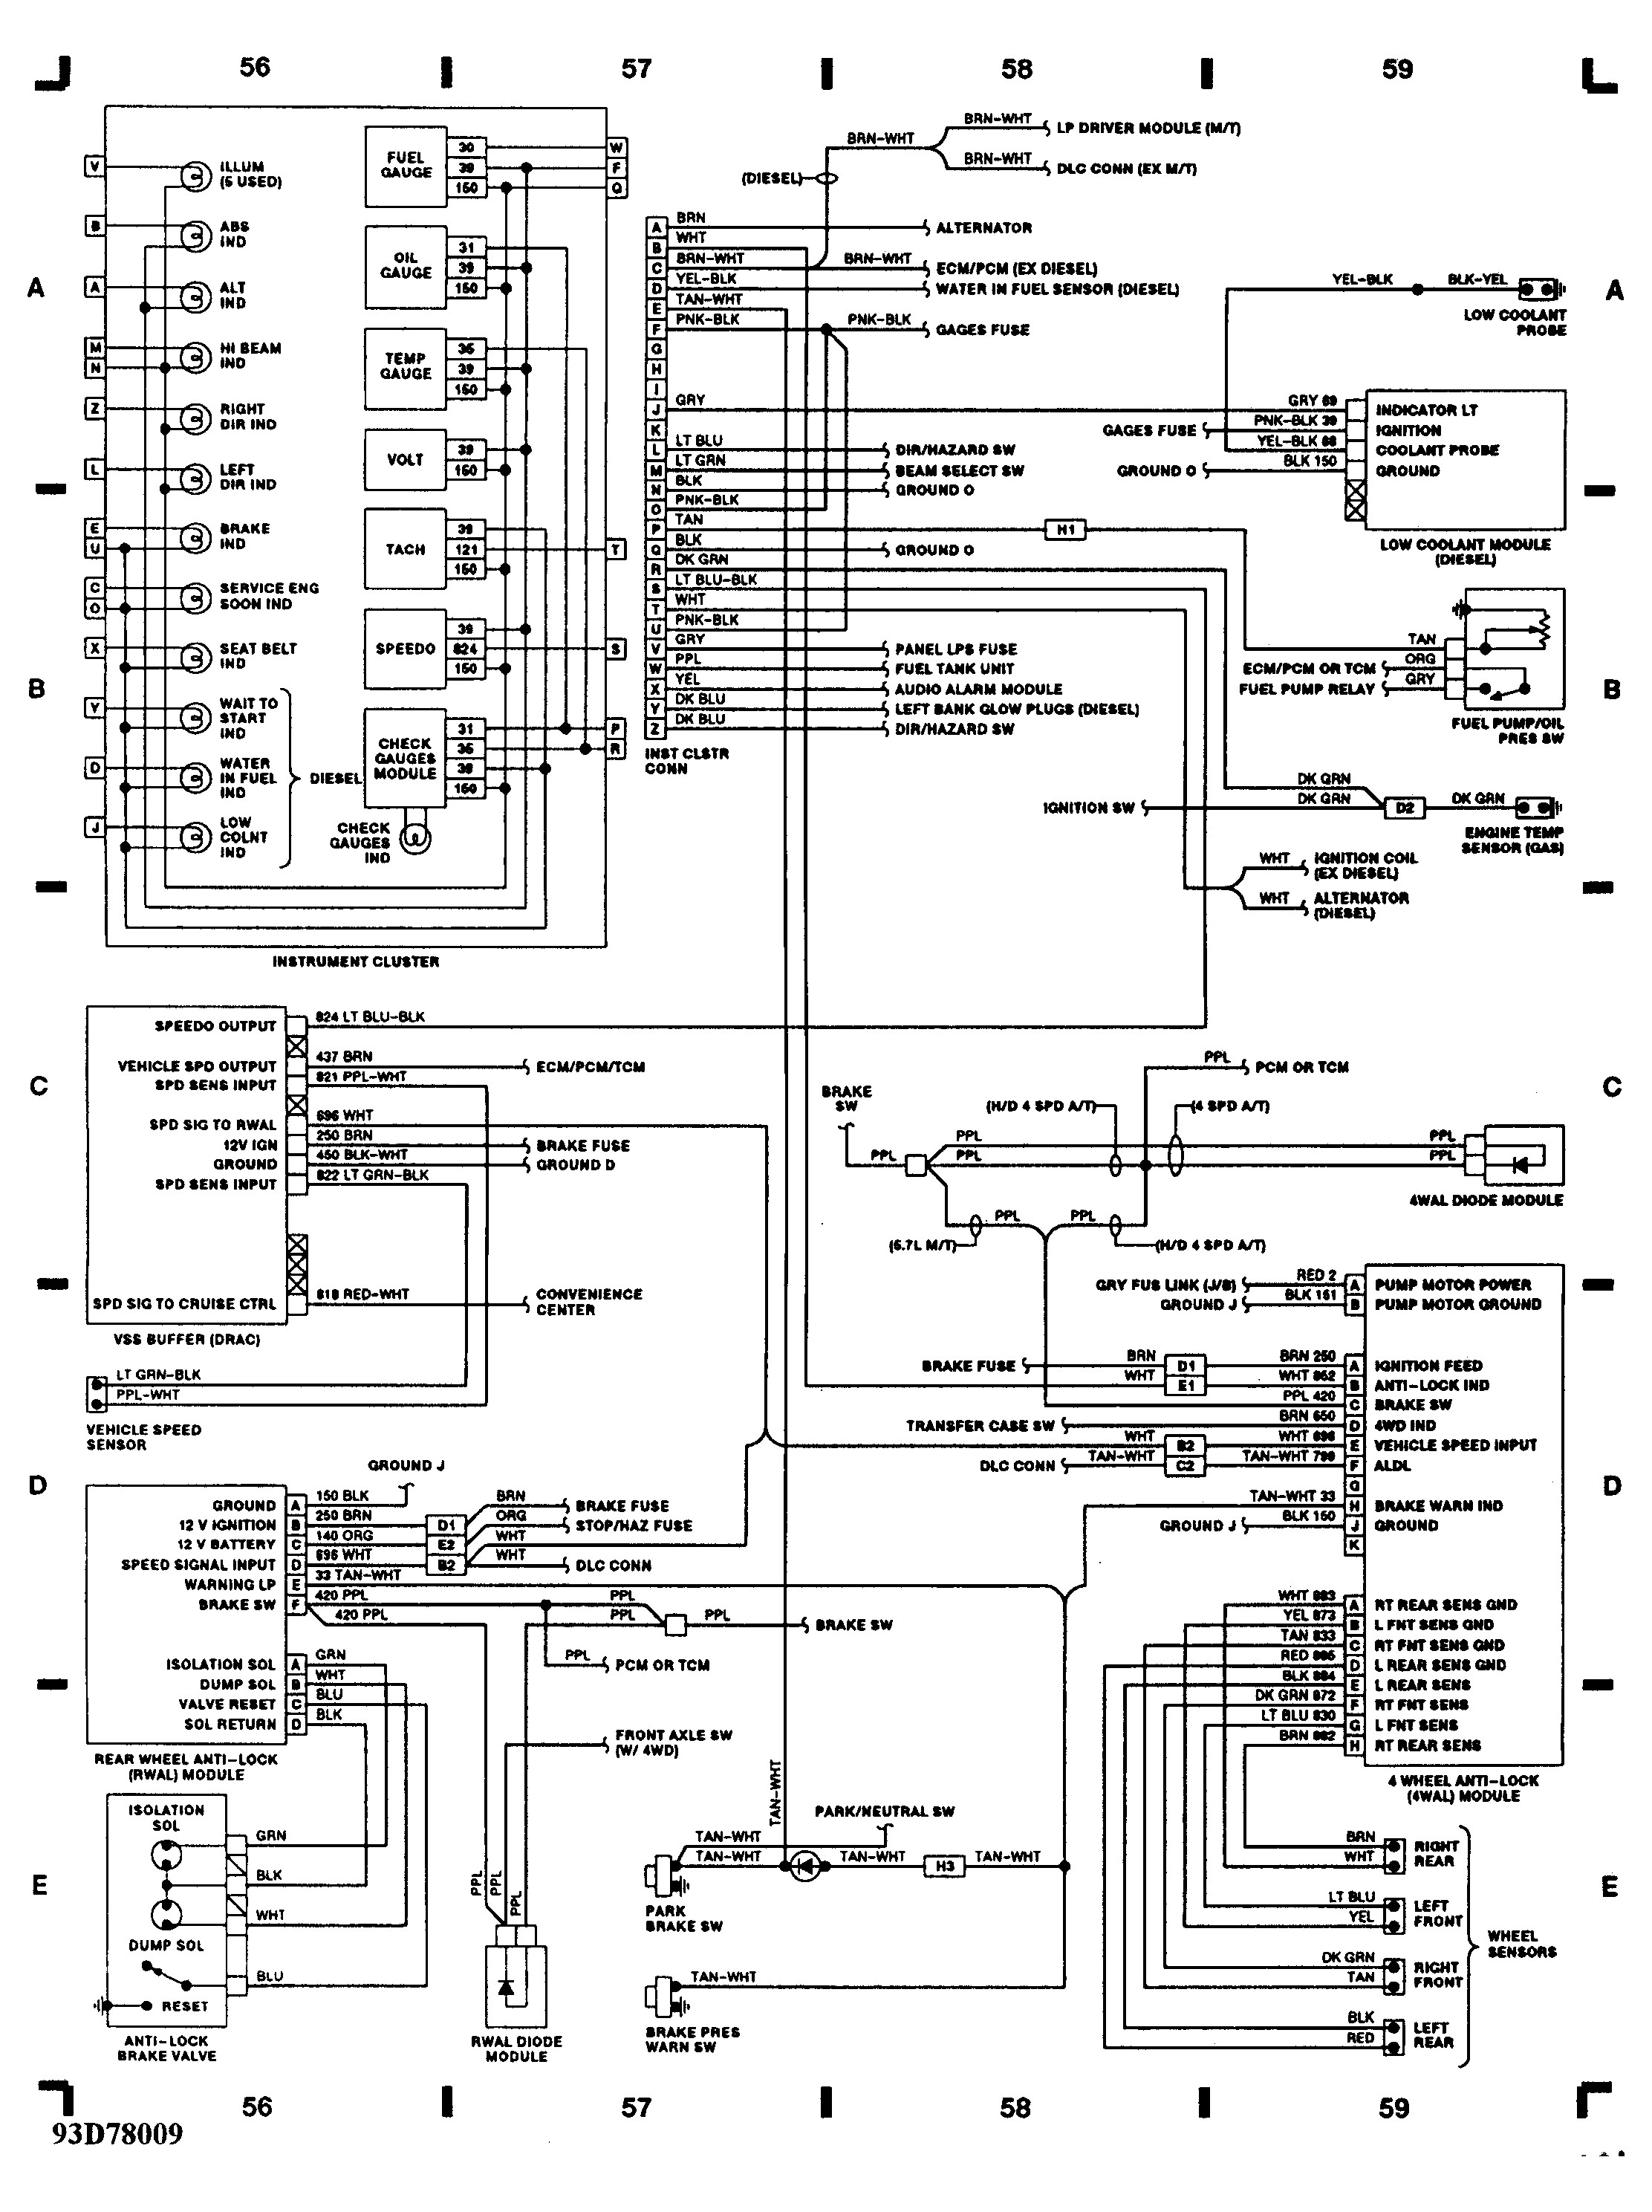 2002 Chevy Silverado Wiring Diagram